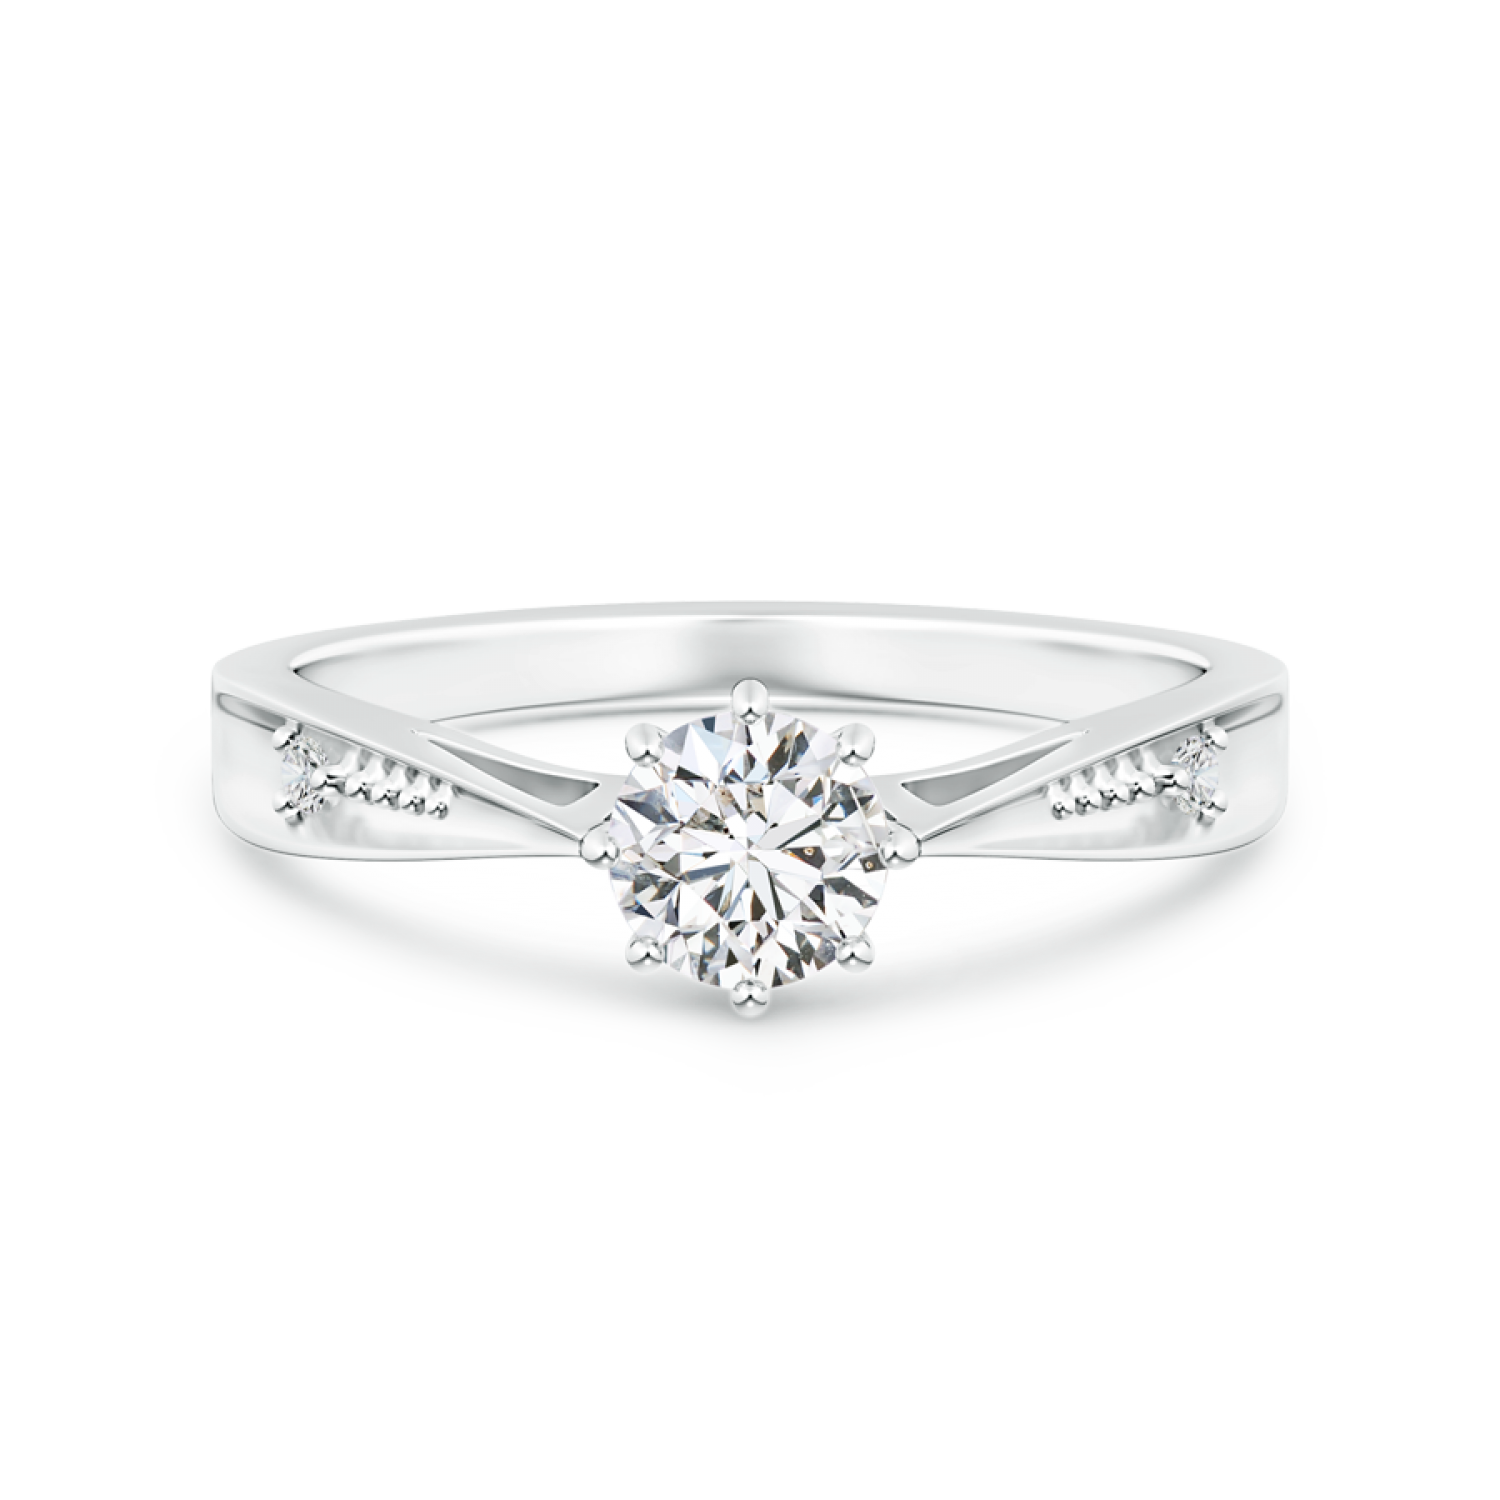 Tapered Shank Lab Grown Diamond Solitaire Ring with Accents - Main Image